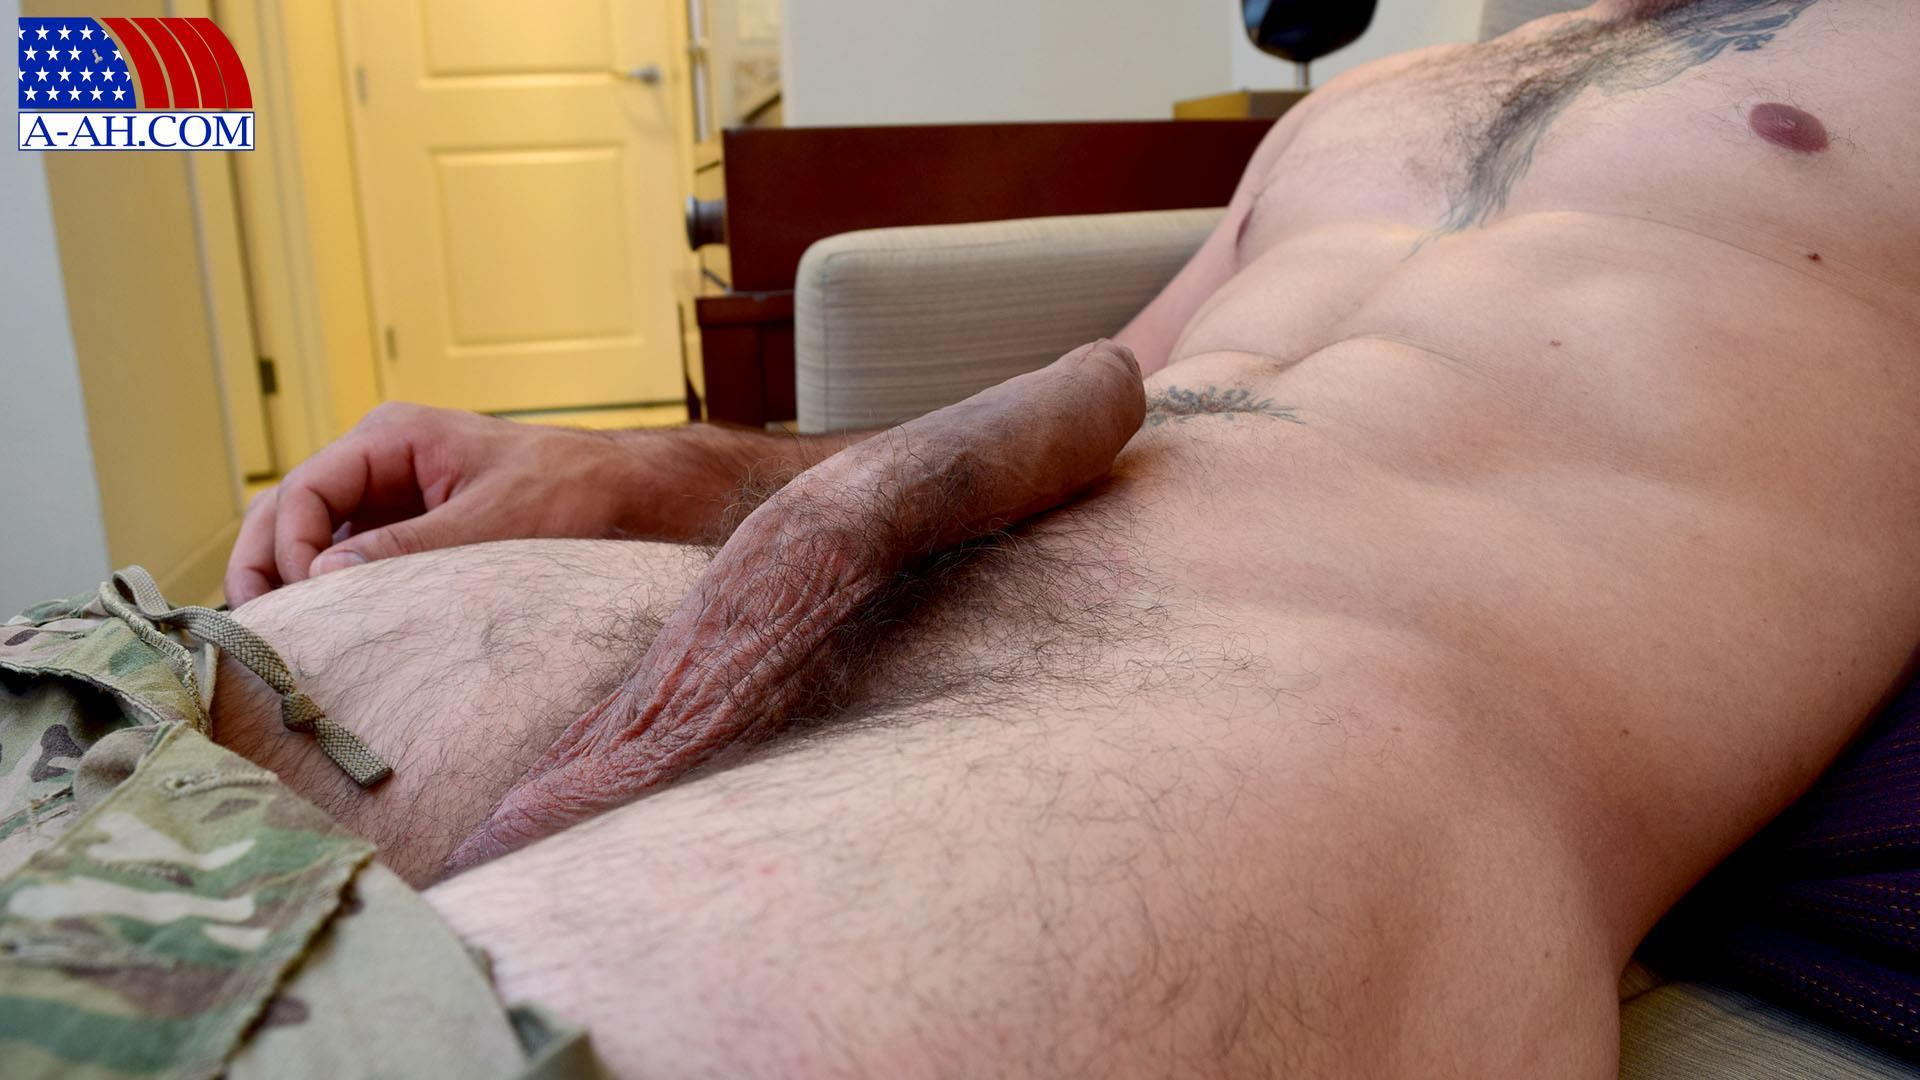 All American Heroes JB US Amry Soldier Jerking His Big Uncut Cock Amateur Gay Porn 06 Amateur Straight US Army Specialist Stroking His Big Uncut Cock